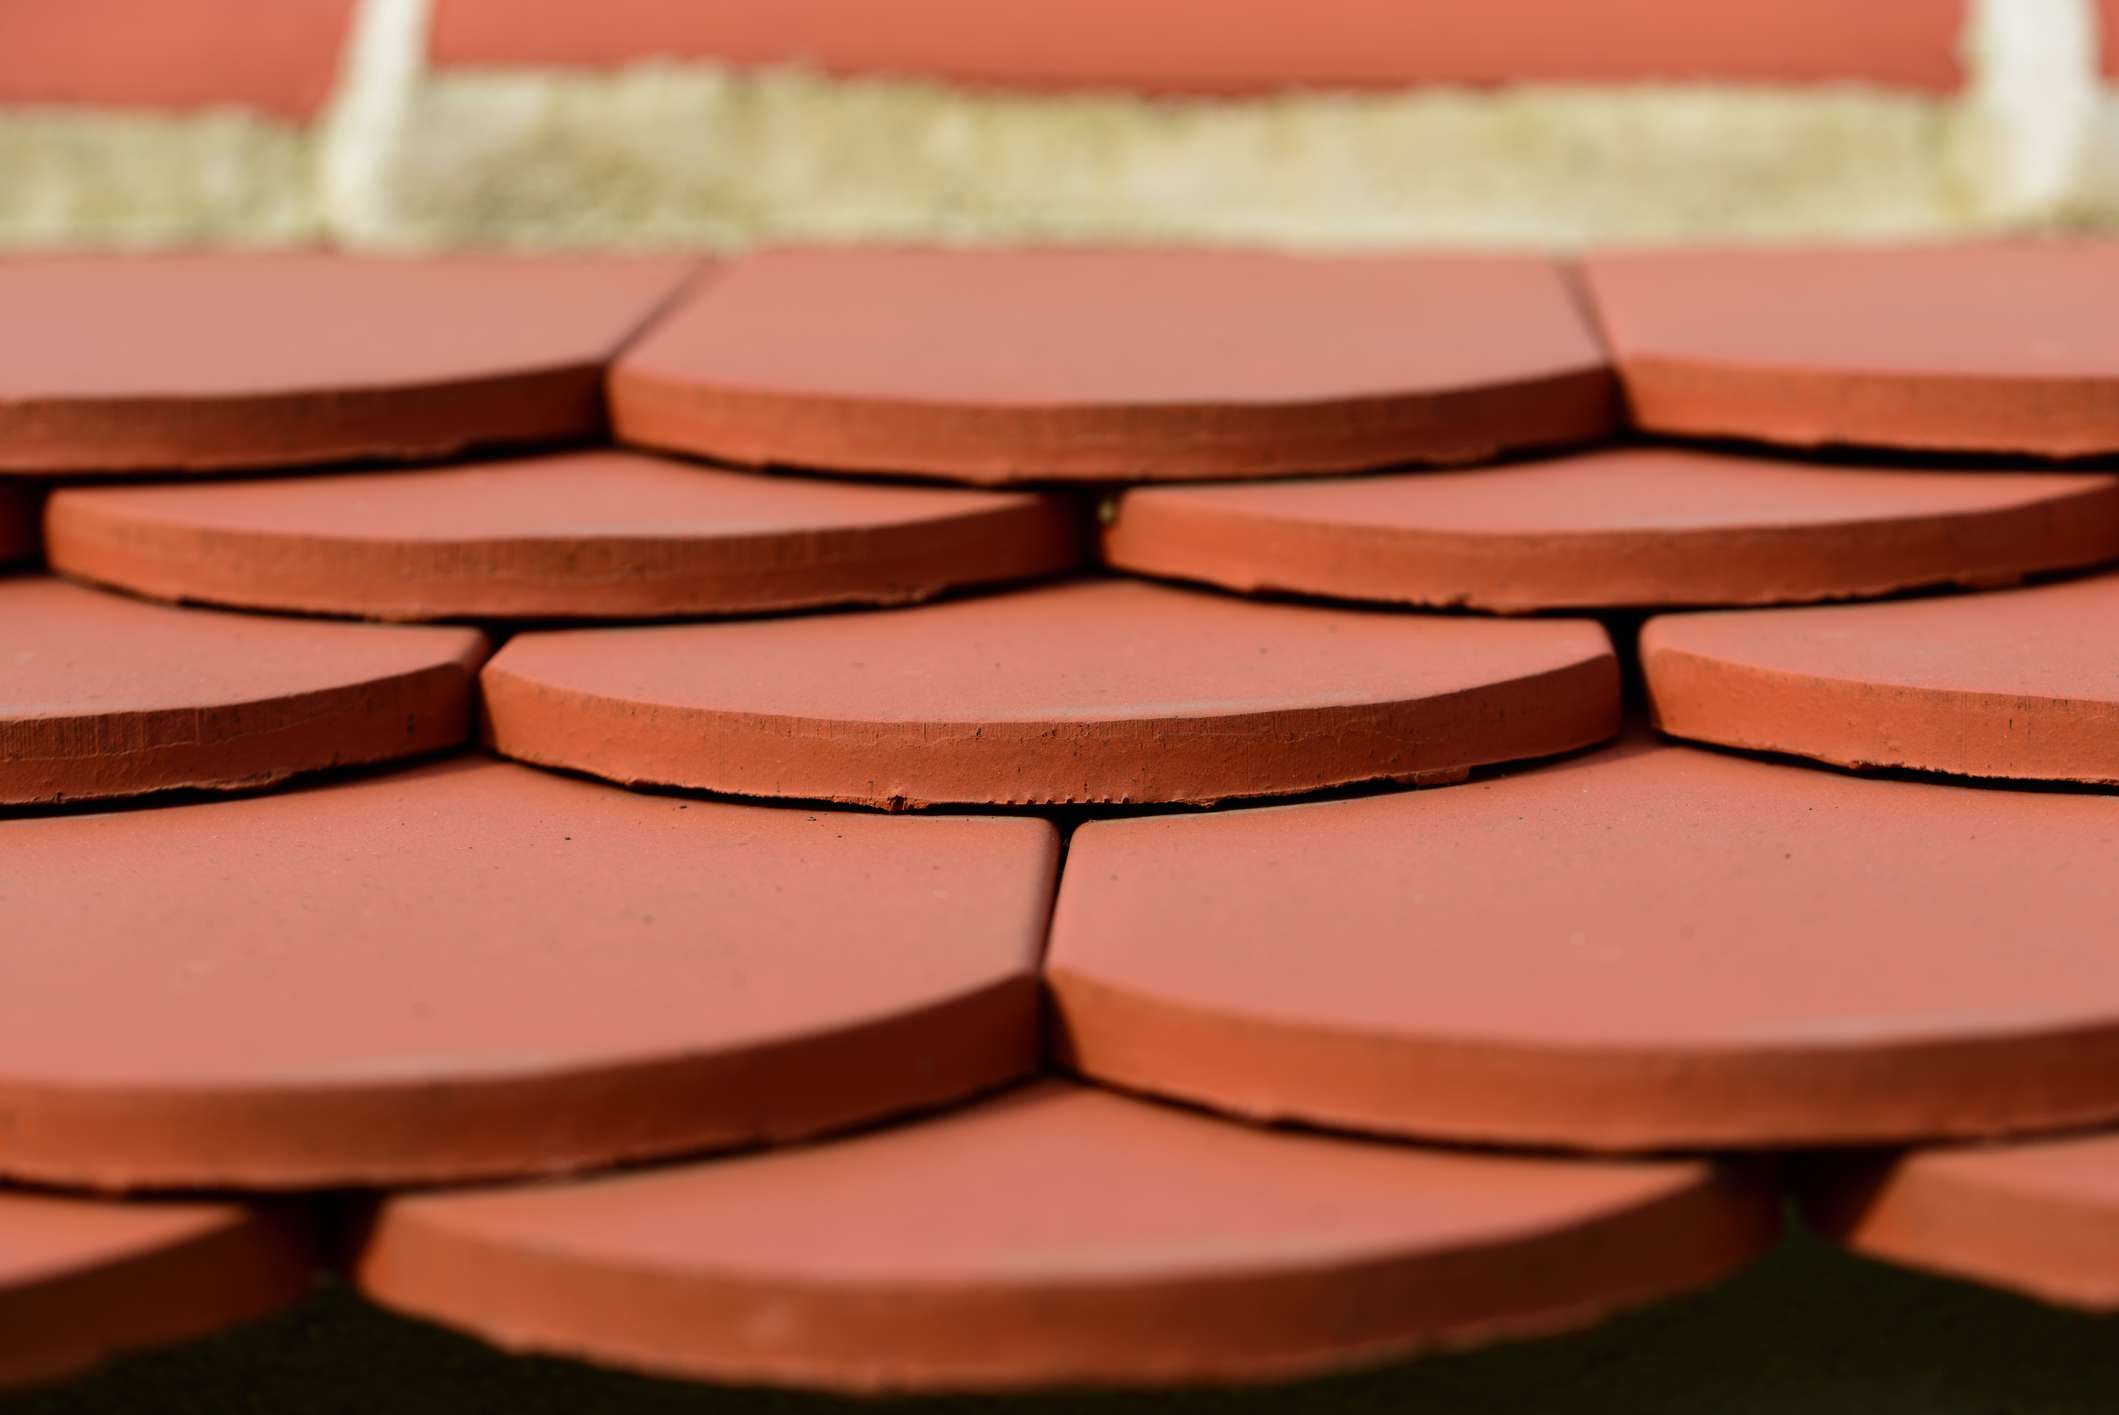 Close-up of flat red clay roof tiles layered on a roof.